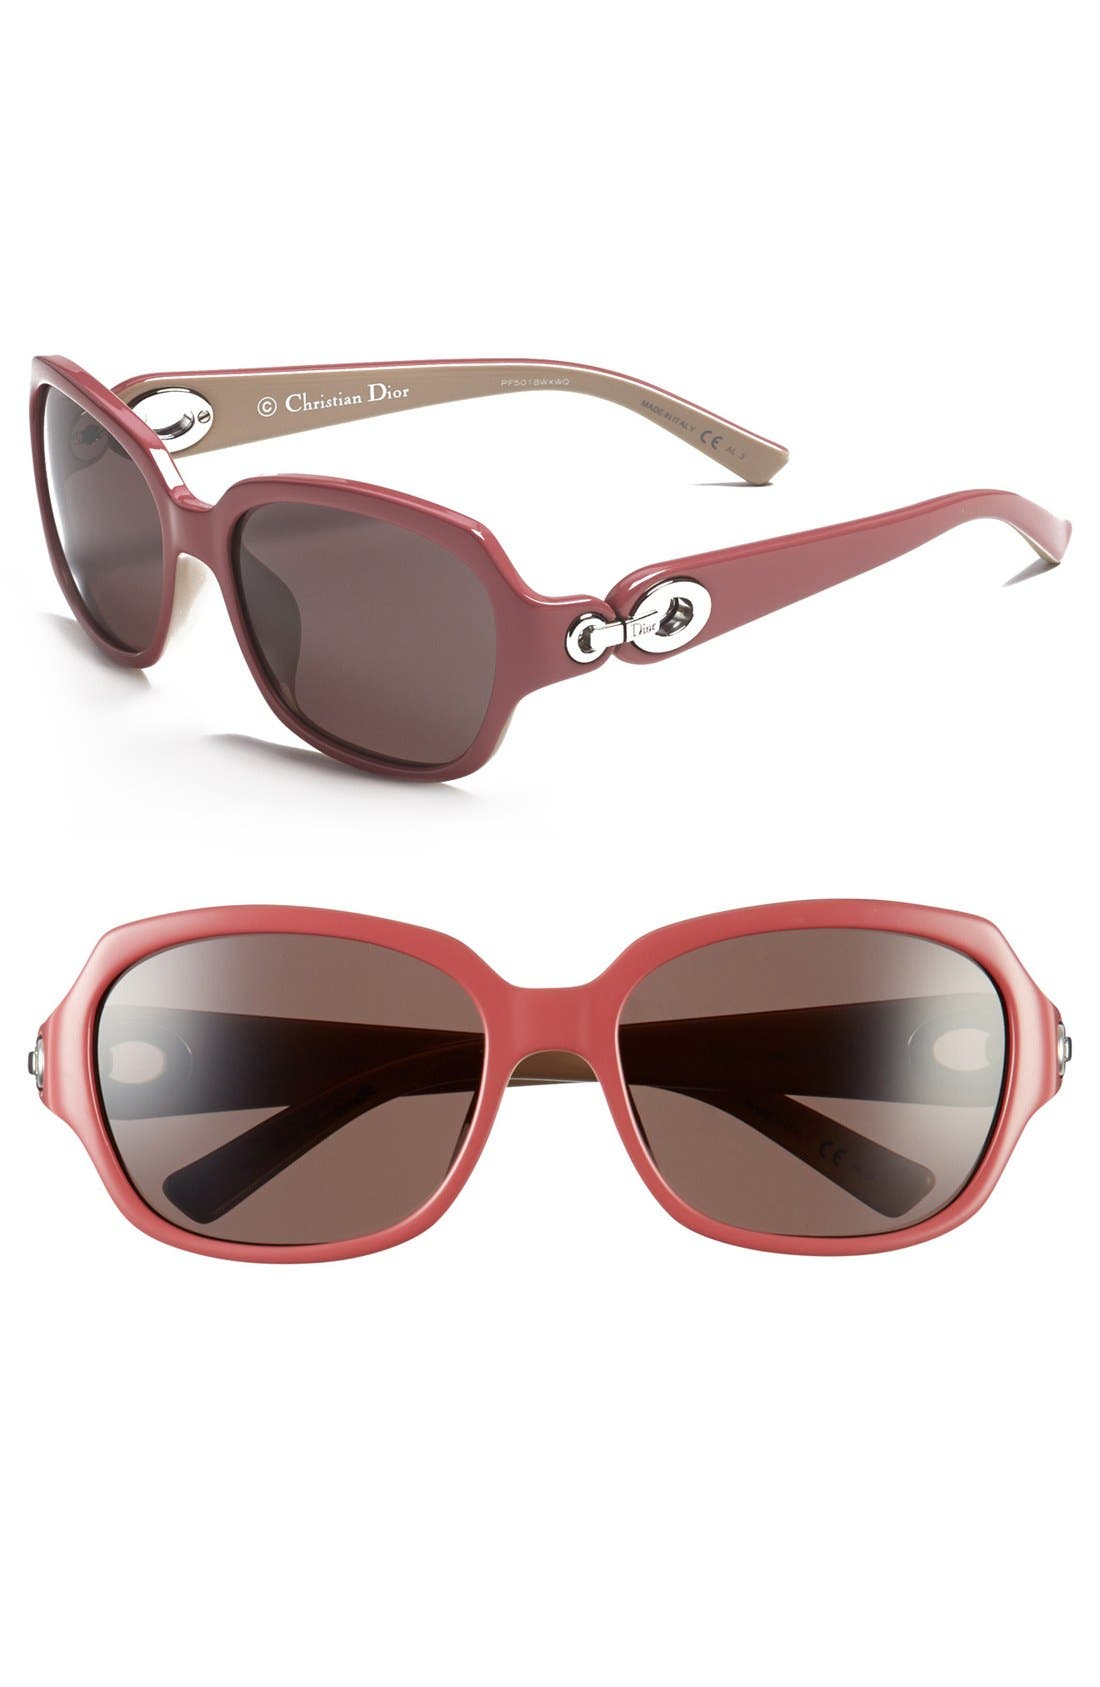 Main Image - Christian Dior 'Diorissimo 2' 56mm Sunglasses